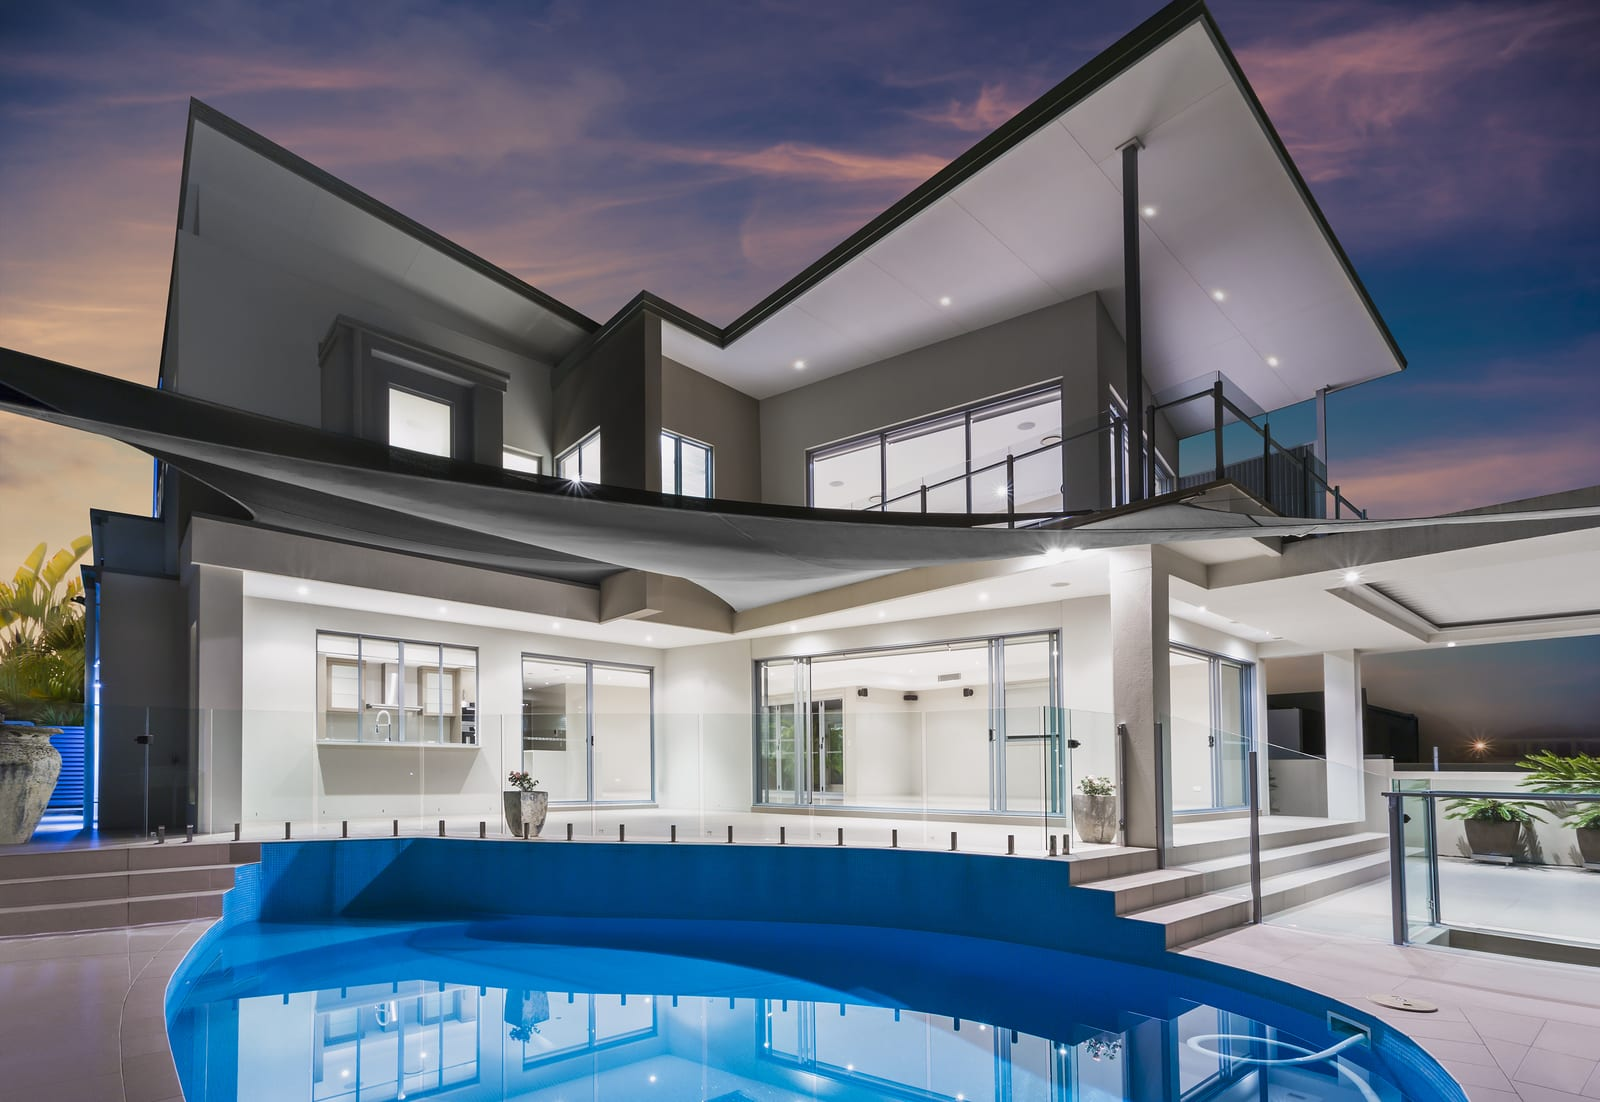 Exterior view of modern luxurious mansion with swimming pool